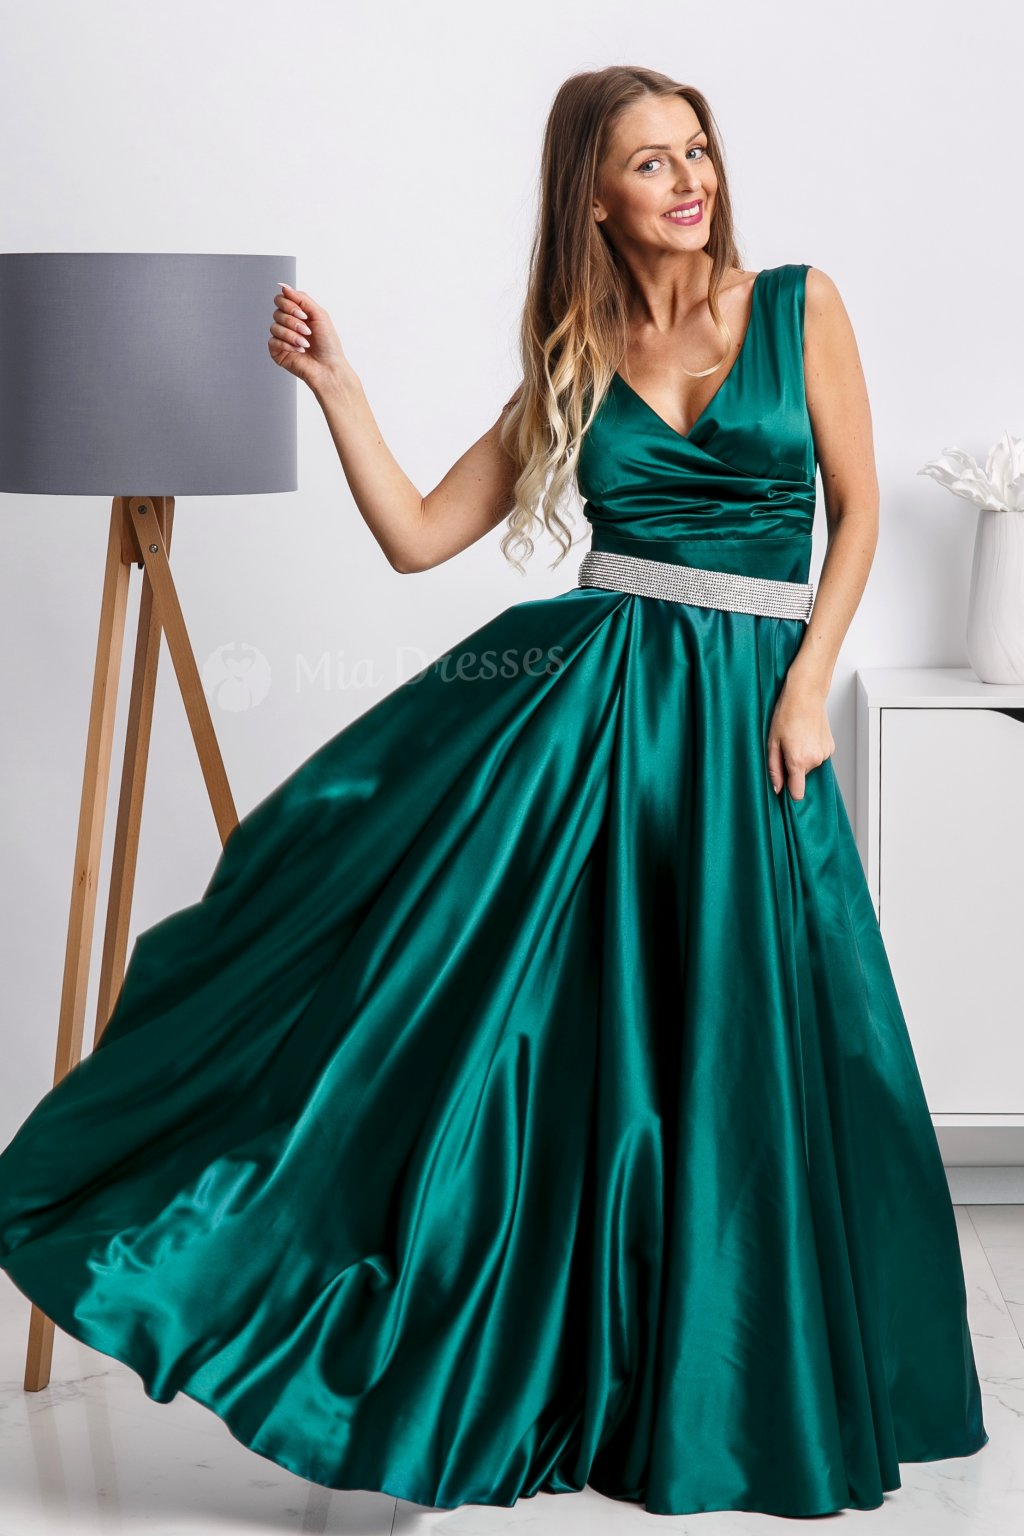 Emerald formal dress with strass belt